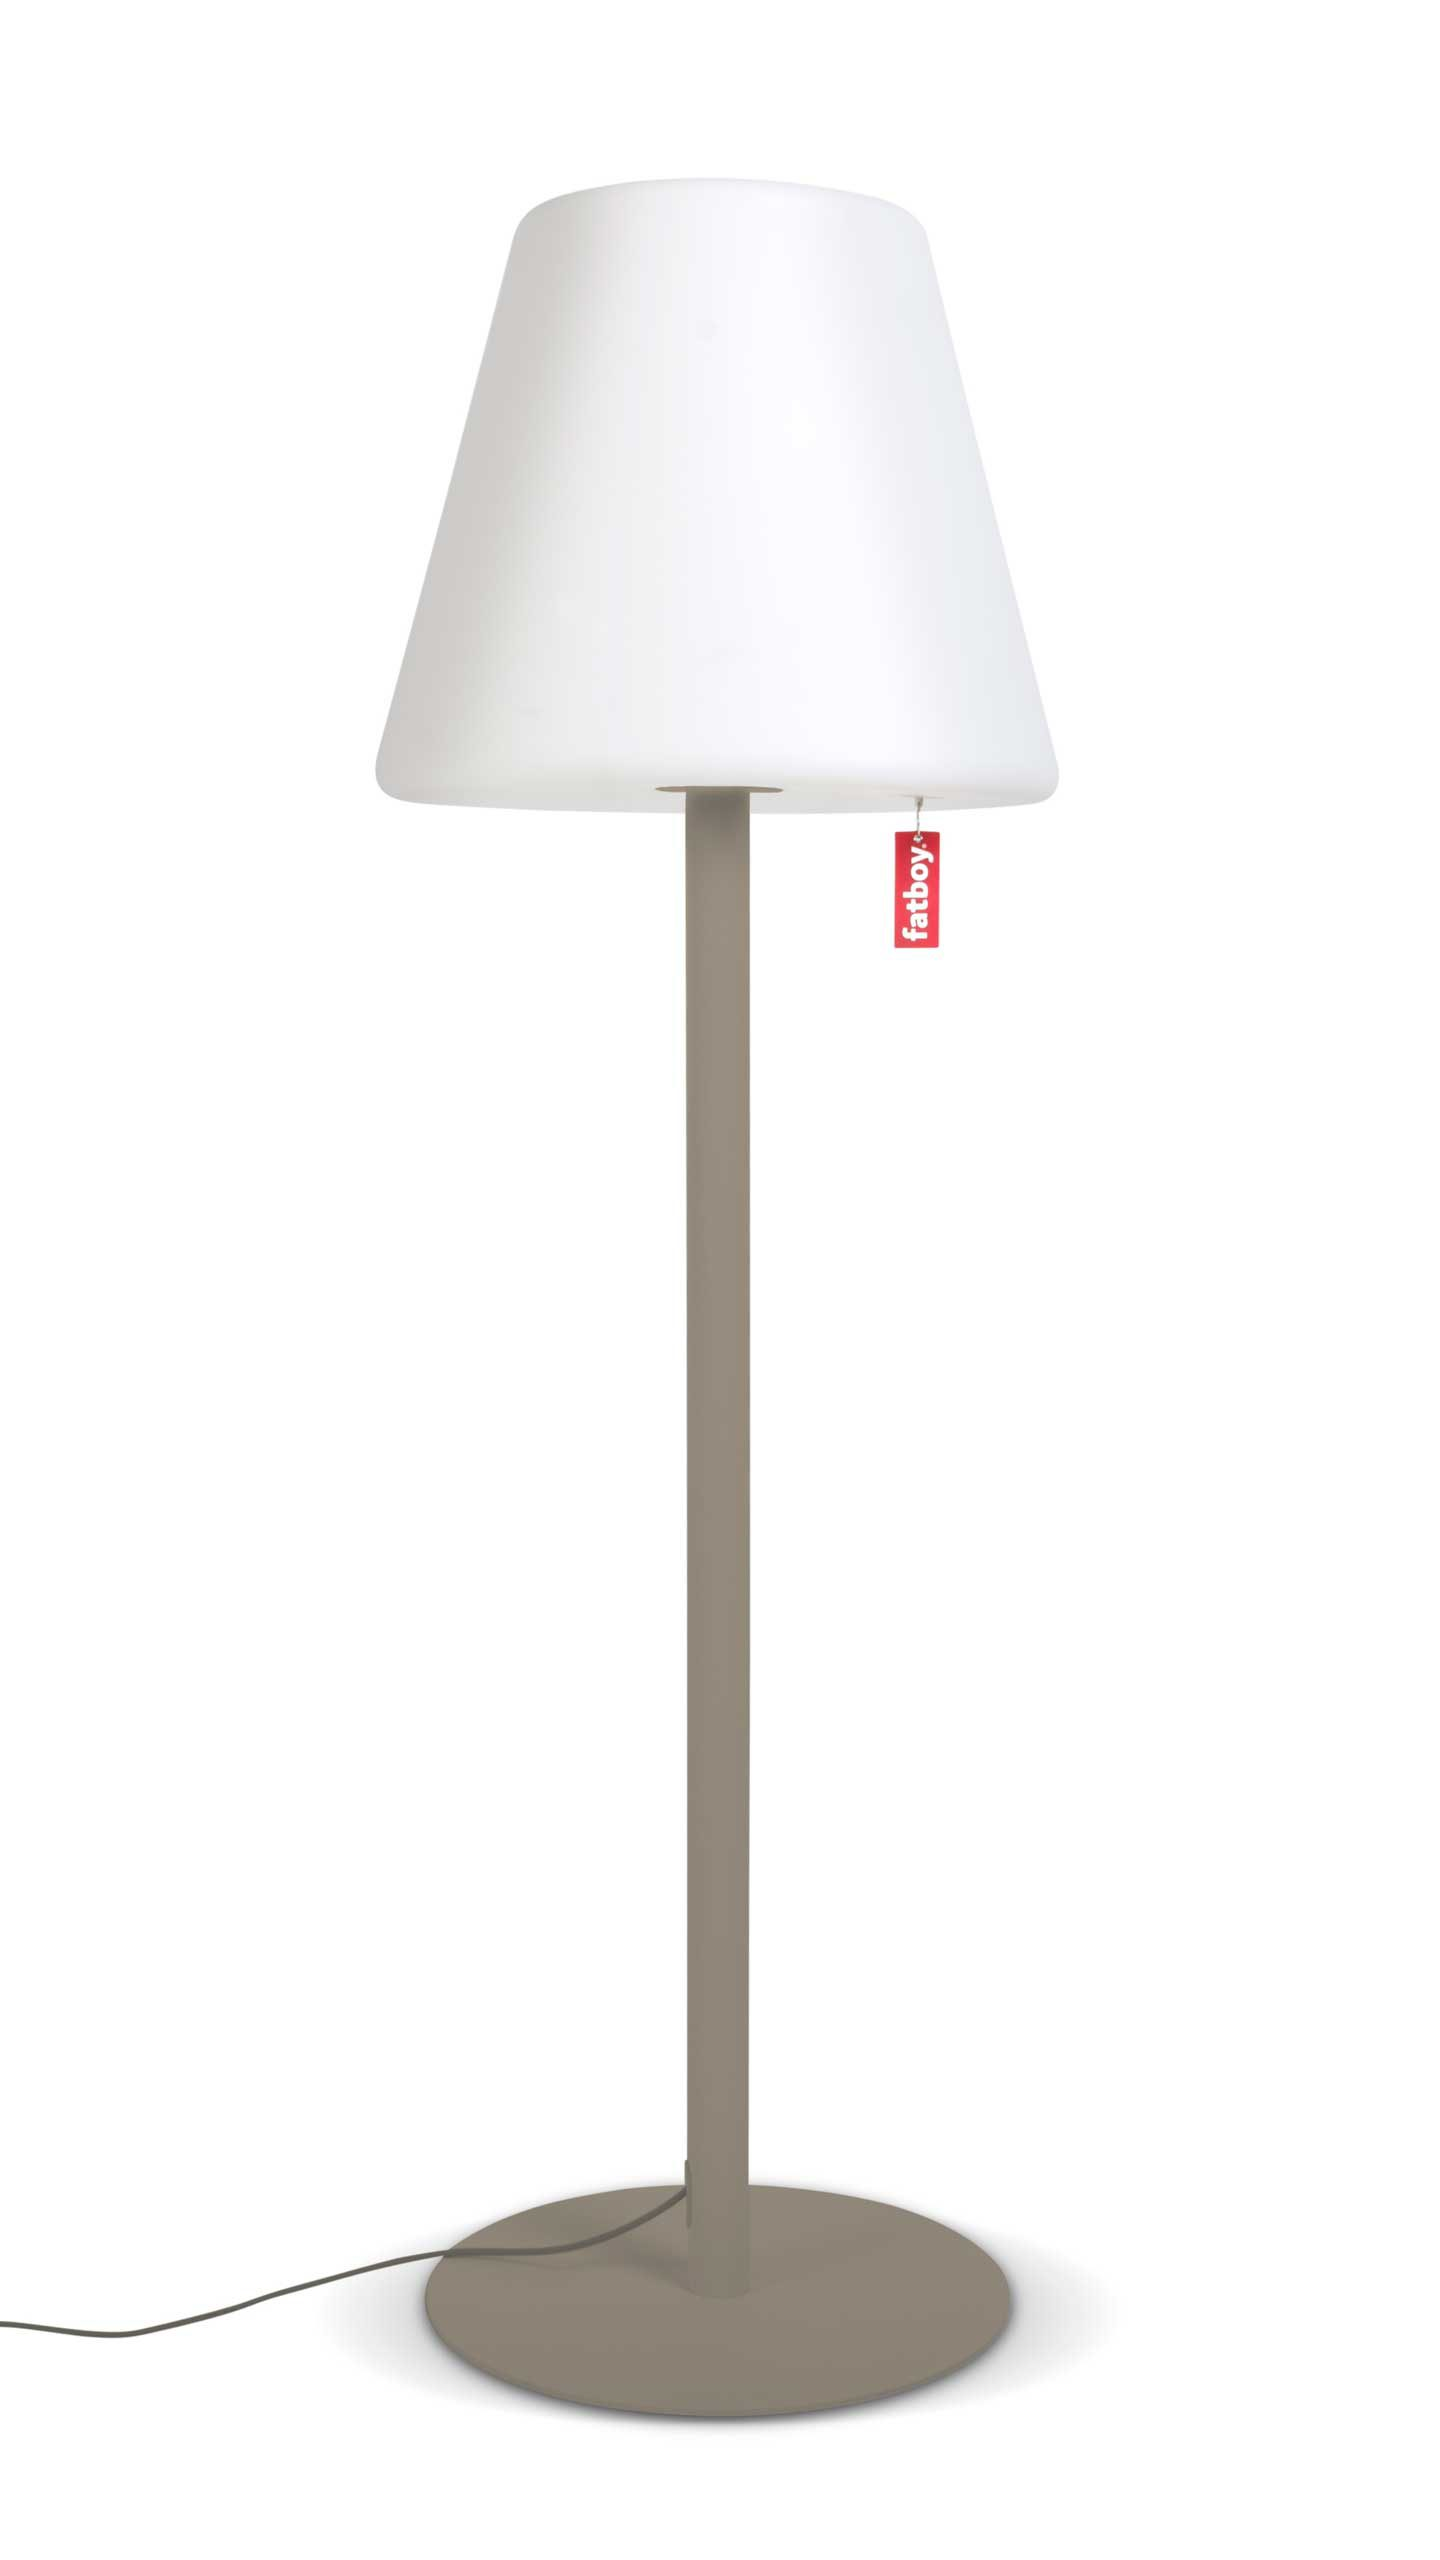 Outdoor Stehlampe Fatboy Edison The Giant Stehleuchte Lampe Taupe Taupefarbene